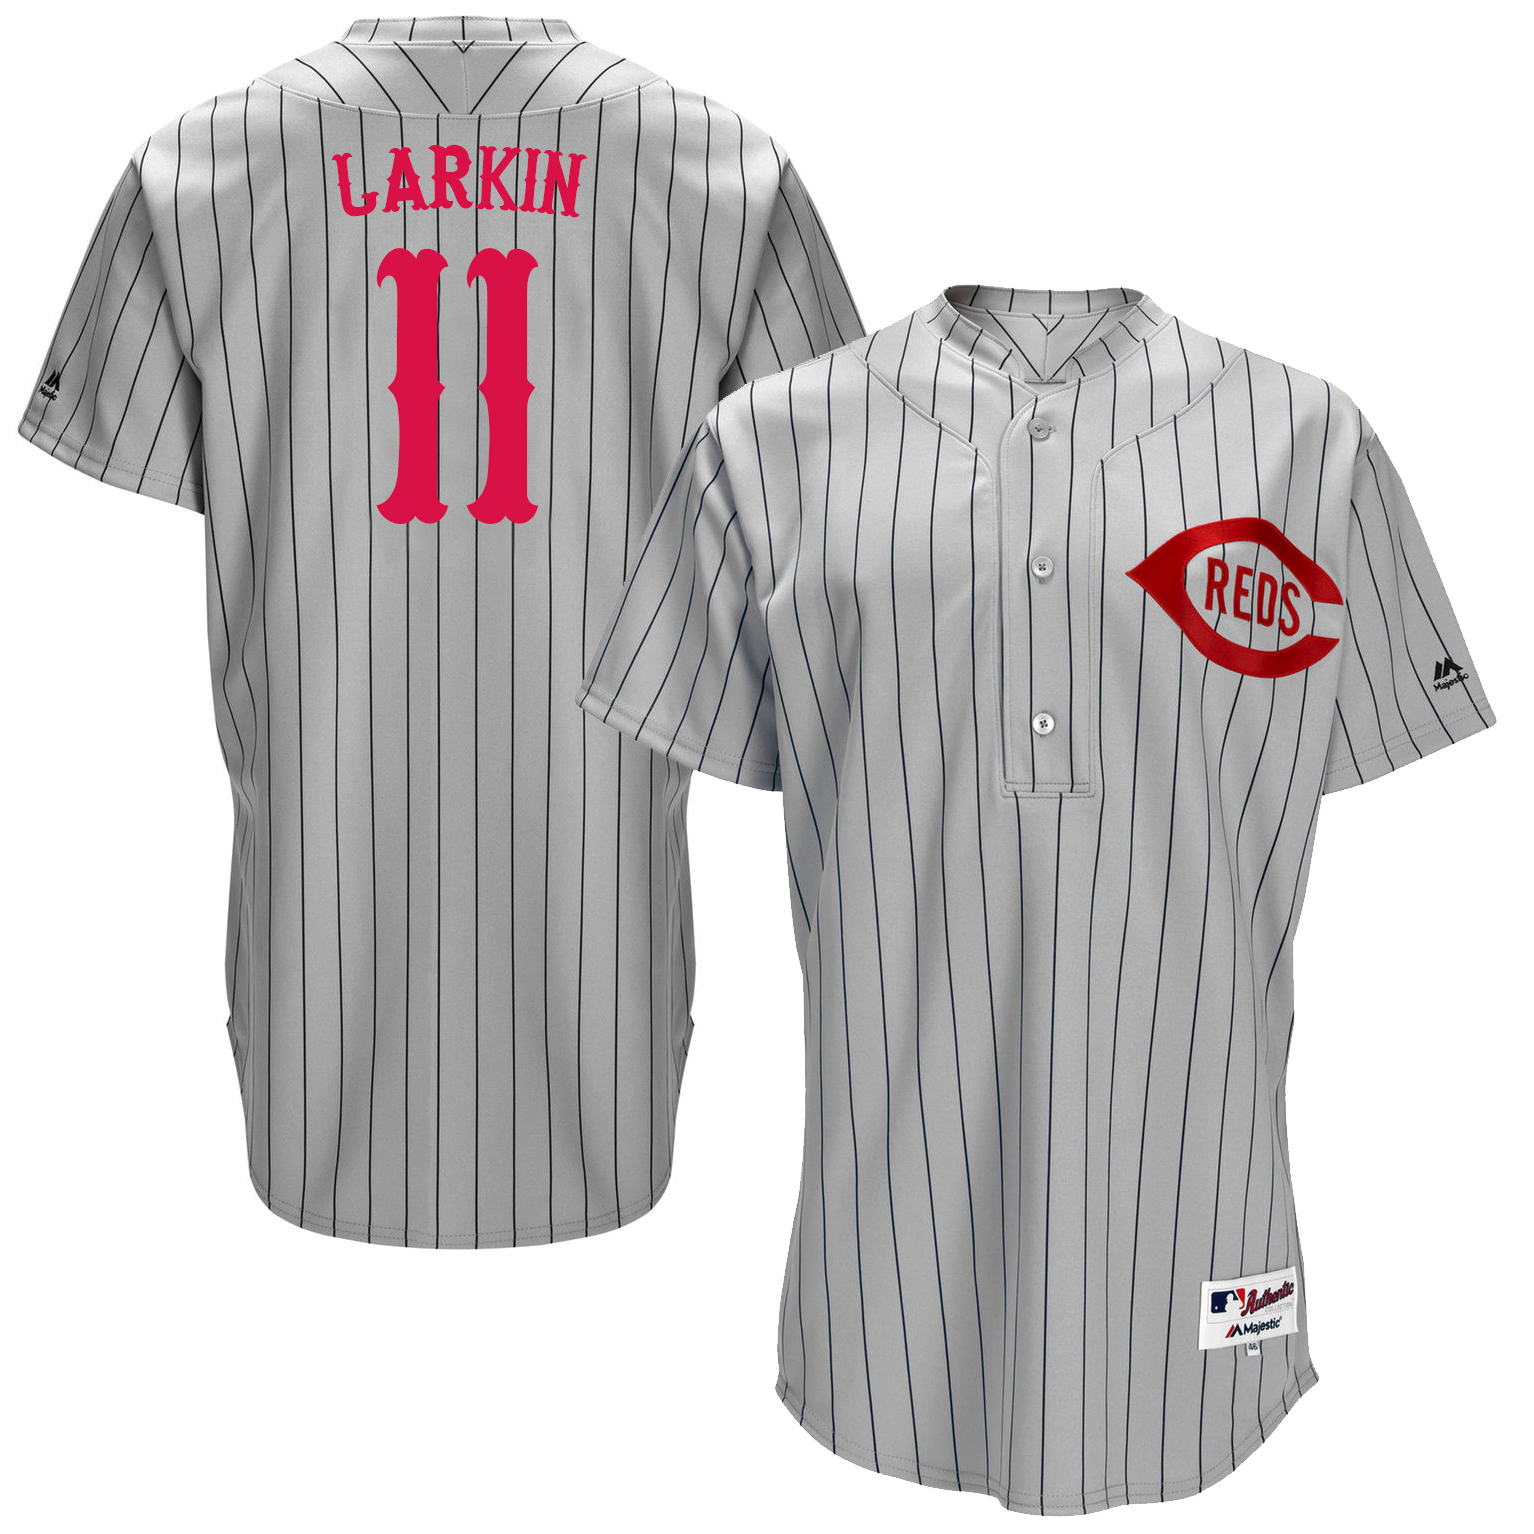 Reds 11 Barry Larkin Grey Throwback Jersey